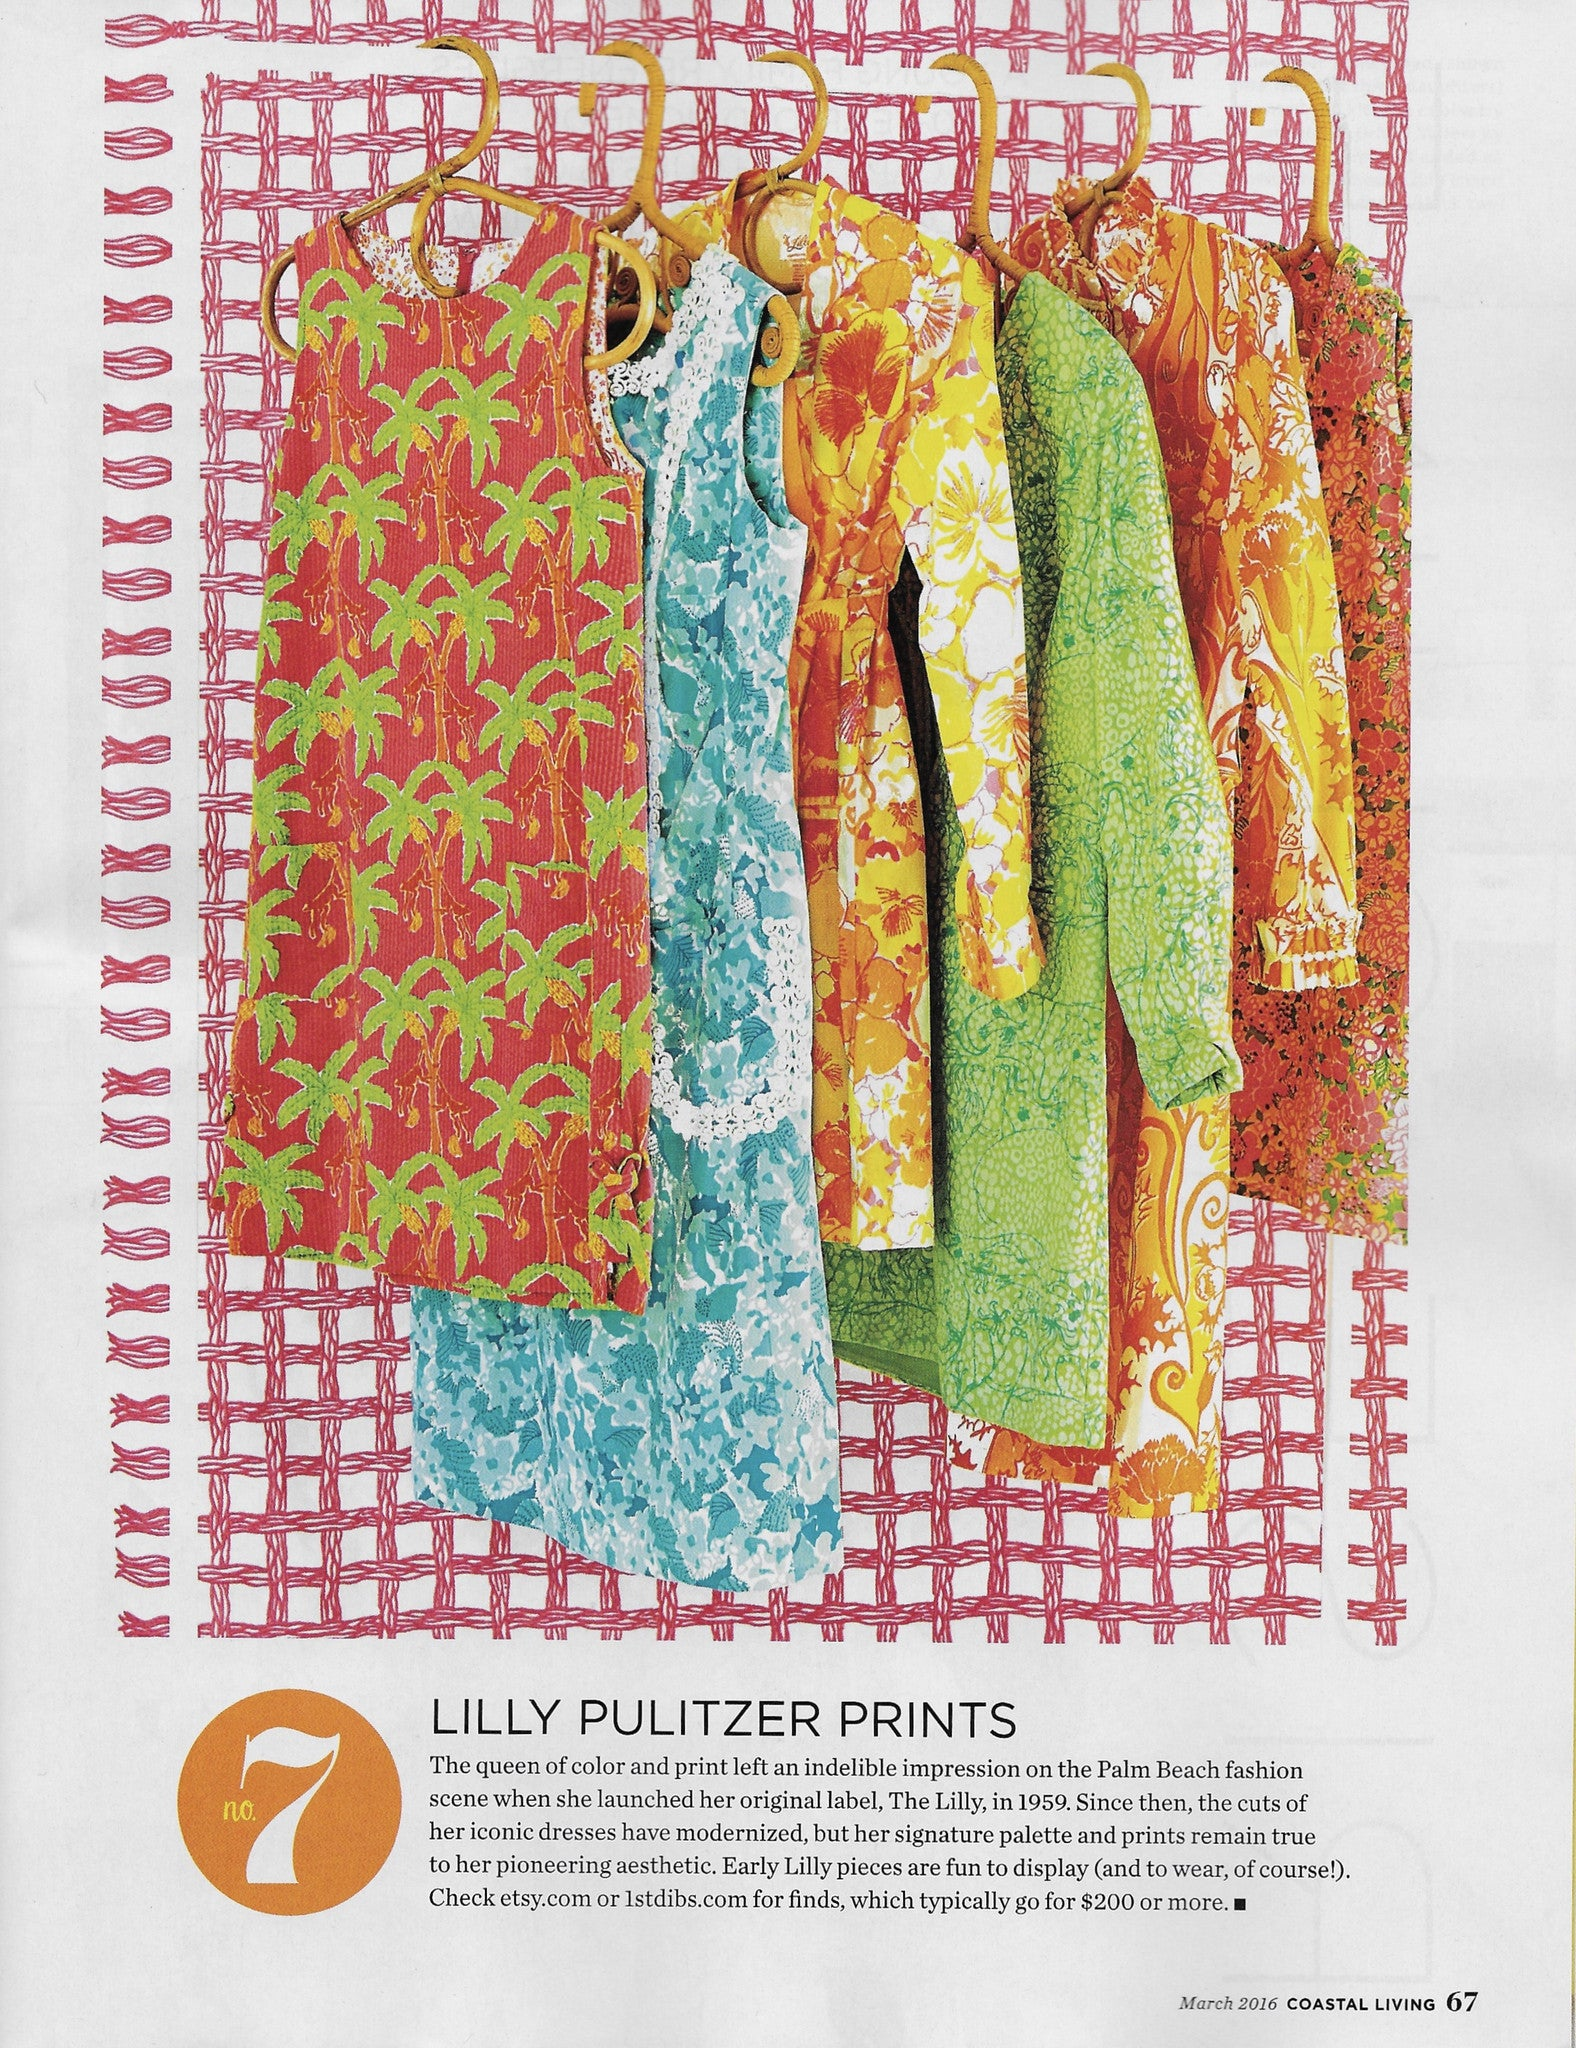 Vintage Lilly Pulitzer in Coastal Living Magazine, March 2016